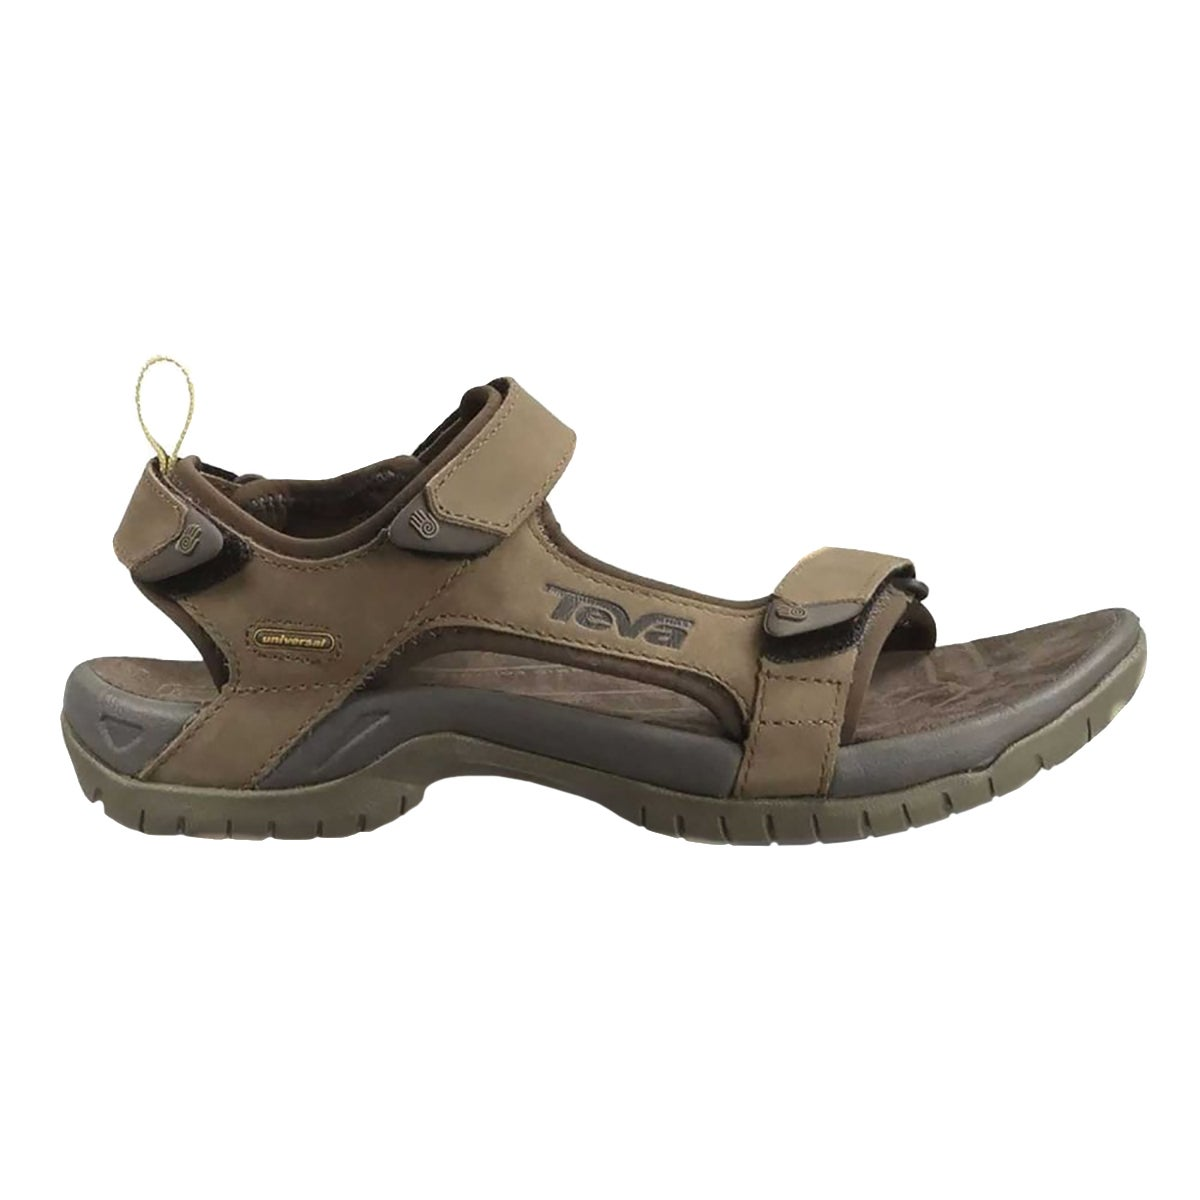 c286323c68bb1 Teva Tanza Footwear Sandals - Brown All Sizes